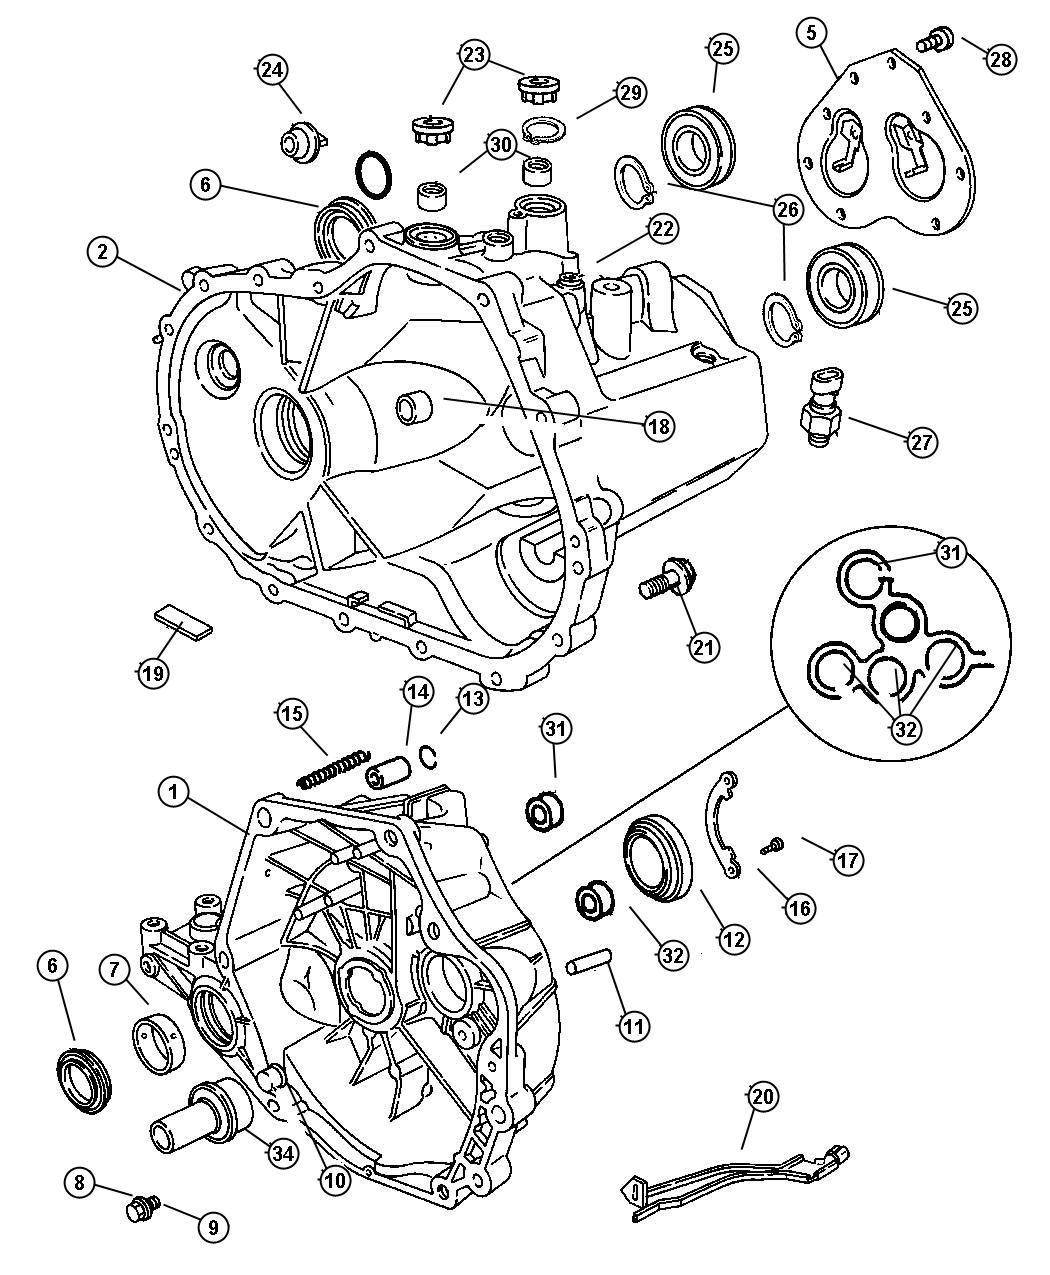 Ford Fusion Serpentine Belt Diagram Ford Wiring